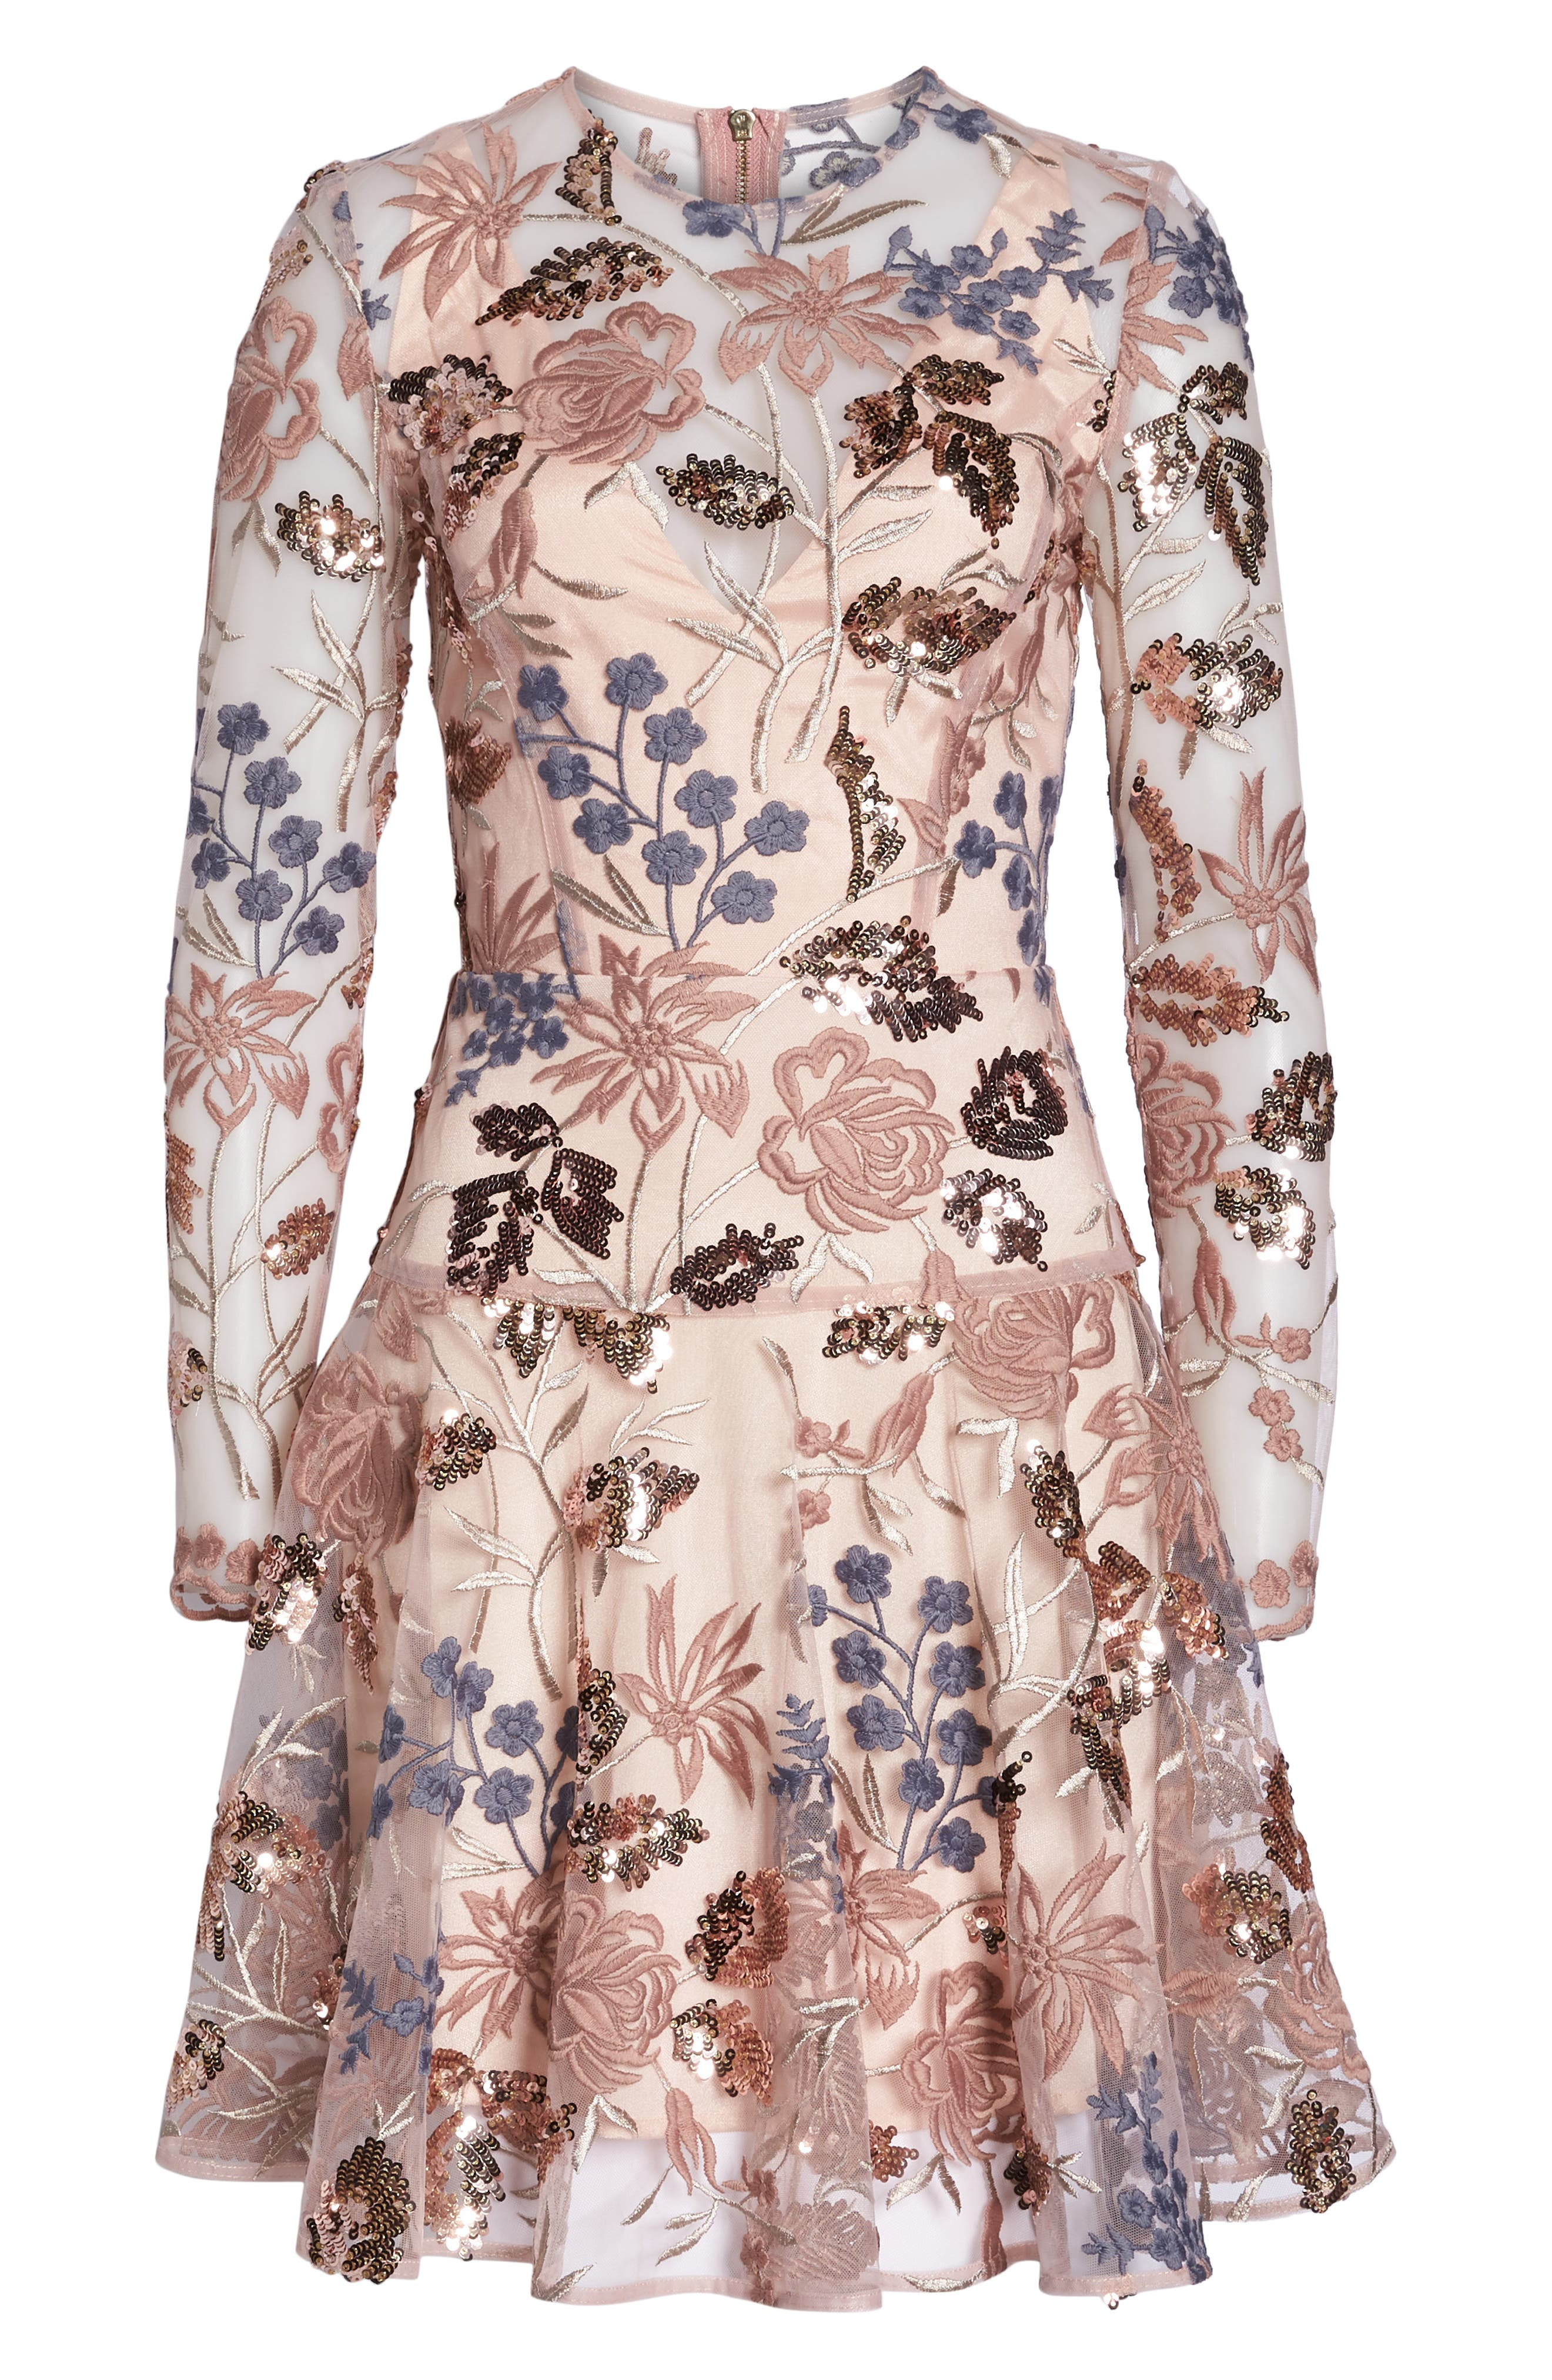 BRONX AND BANCO,                             Aurora Embroidered Fit & Flare Dress,                             Alternate thumbnail 7, color,                             PINK